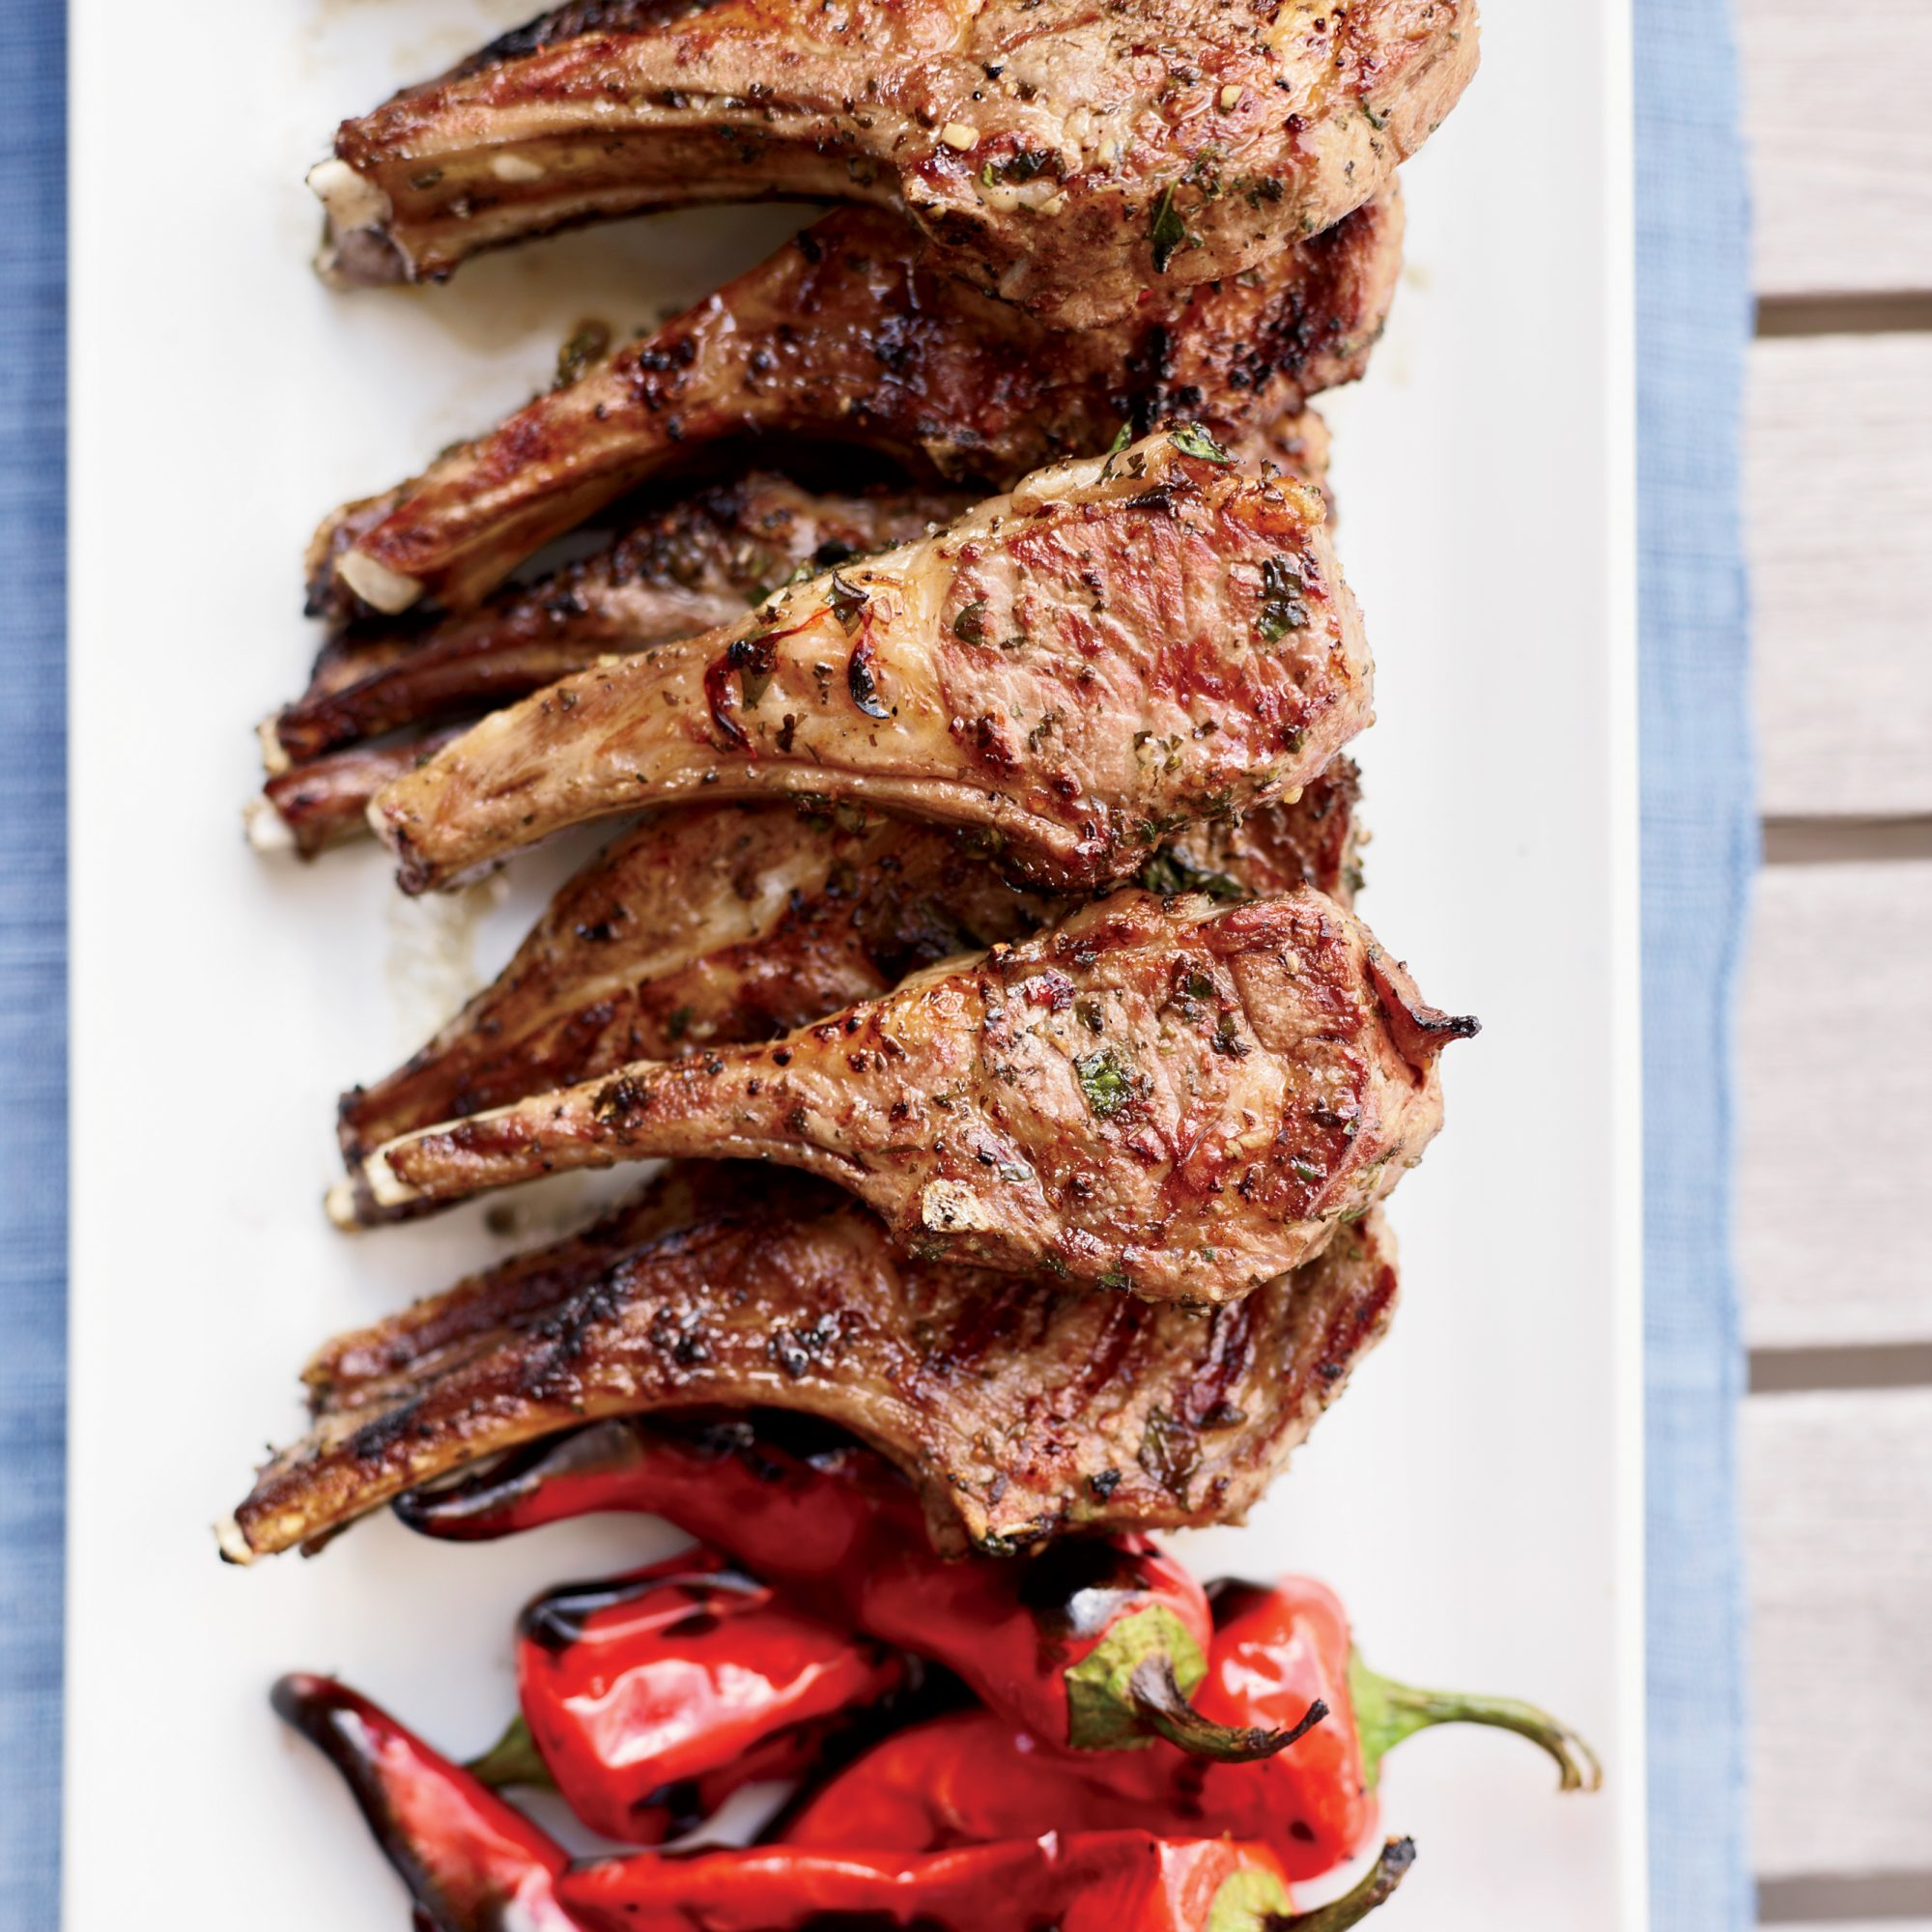 201107-r-Grilled-Lamb-Chops-with-Garlic-Chiles-and-Anchovies1.jpg